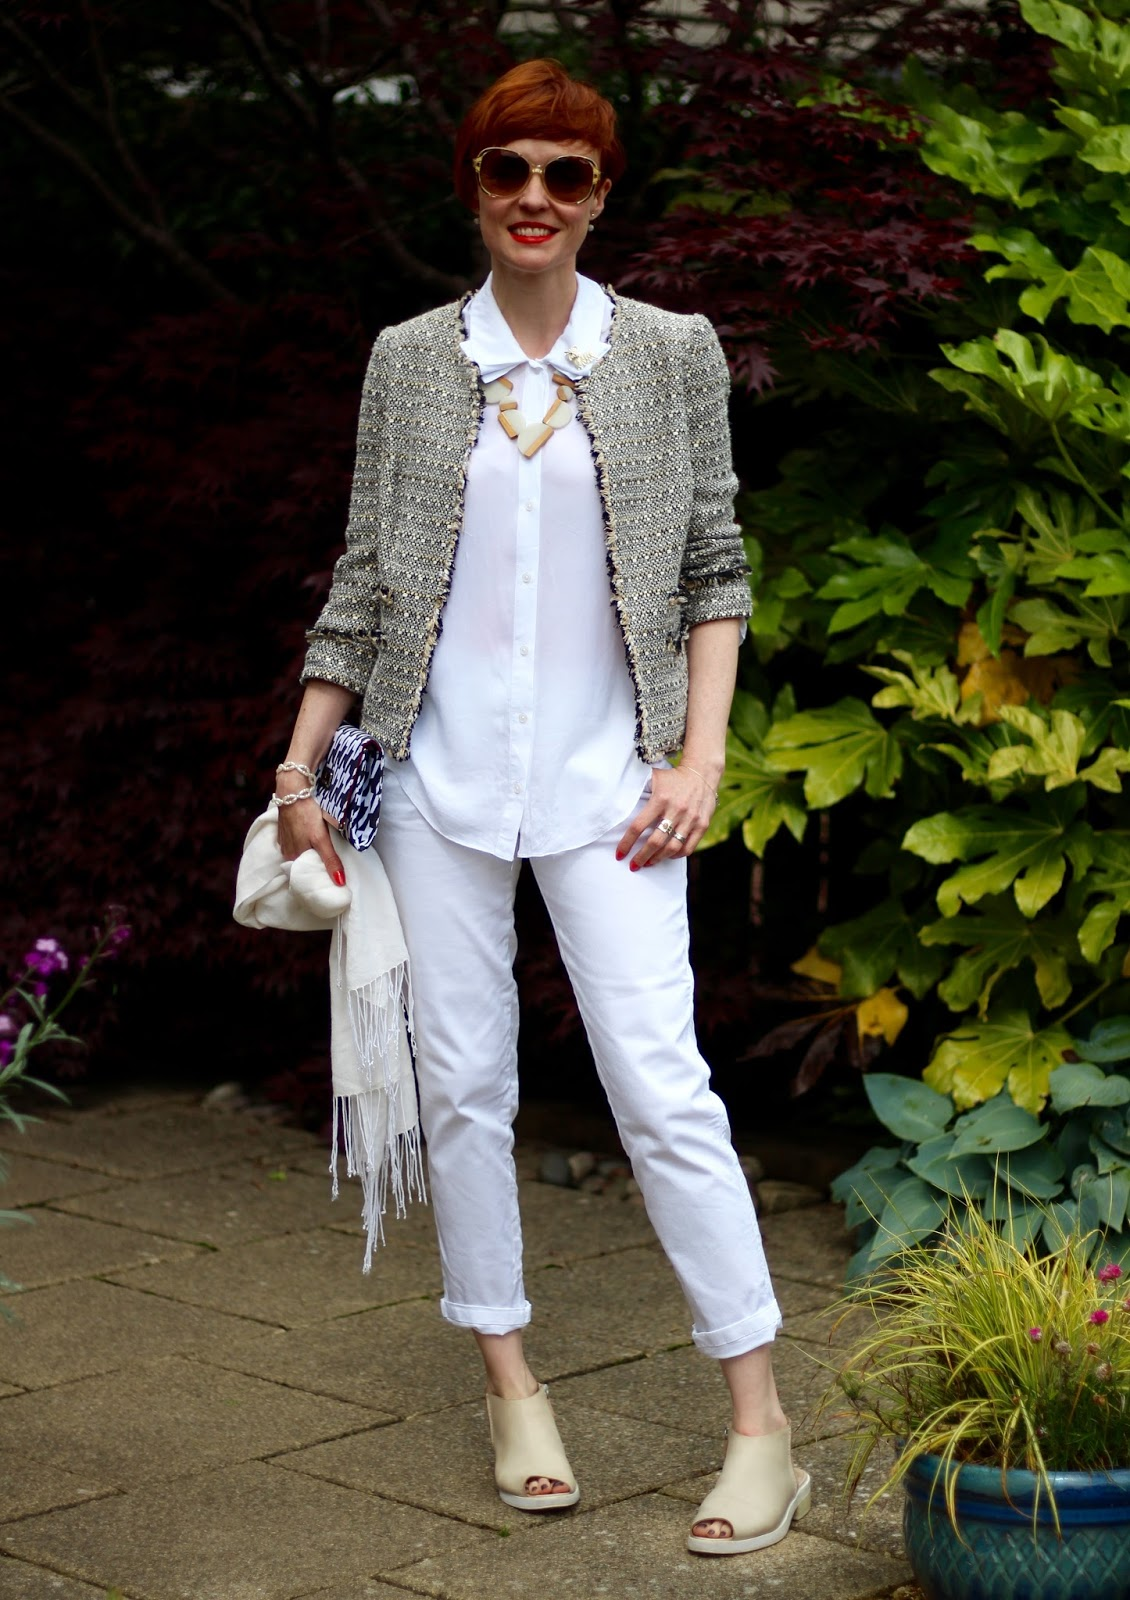 Fake Fabulous | The Fab40's | 9 ways to wear an all white outfit, over 40.